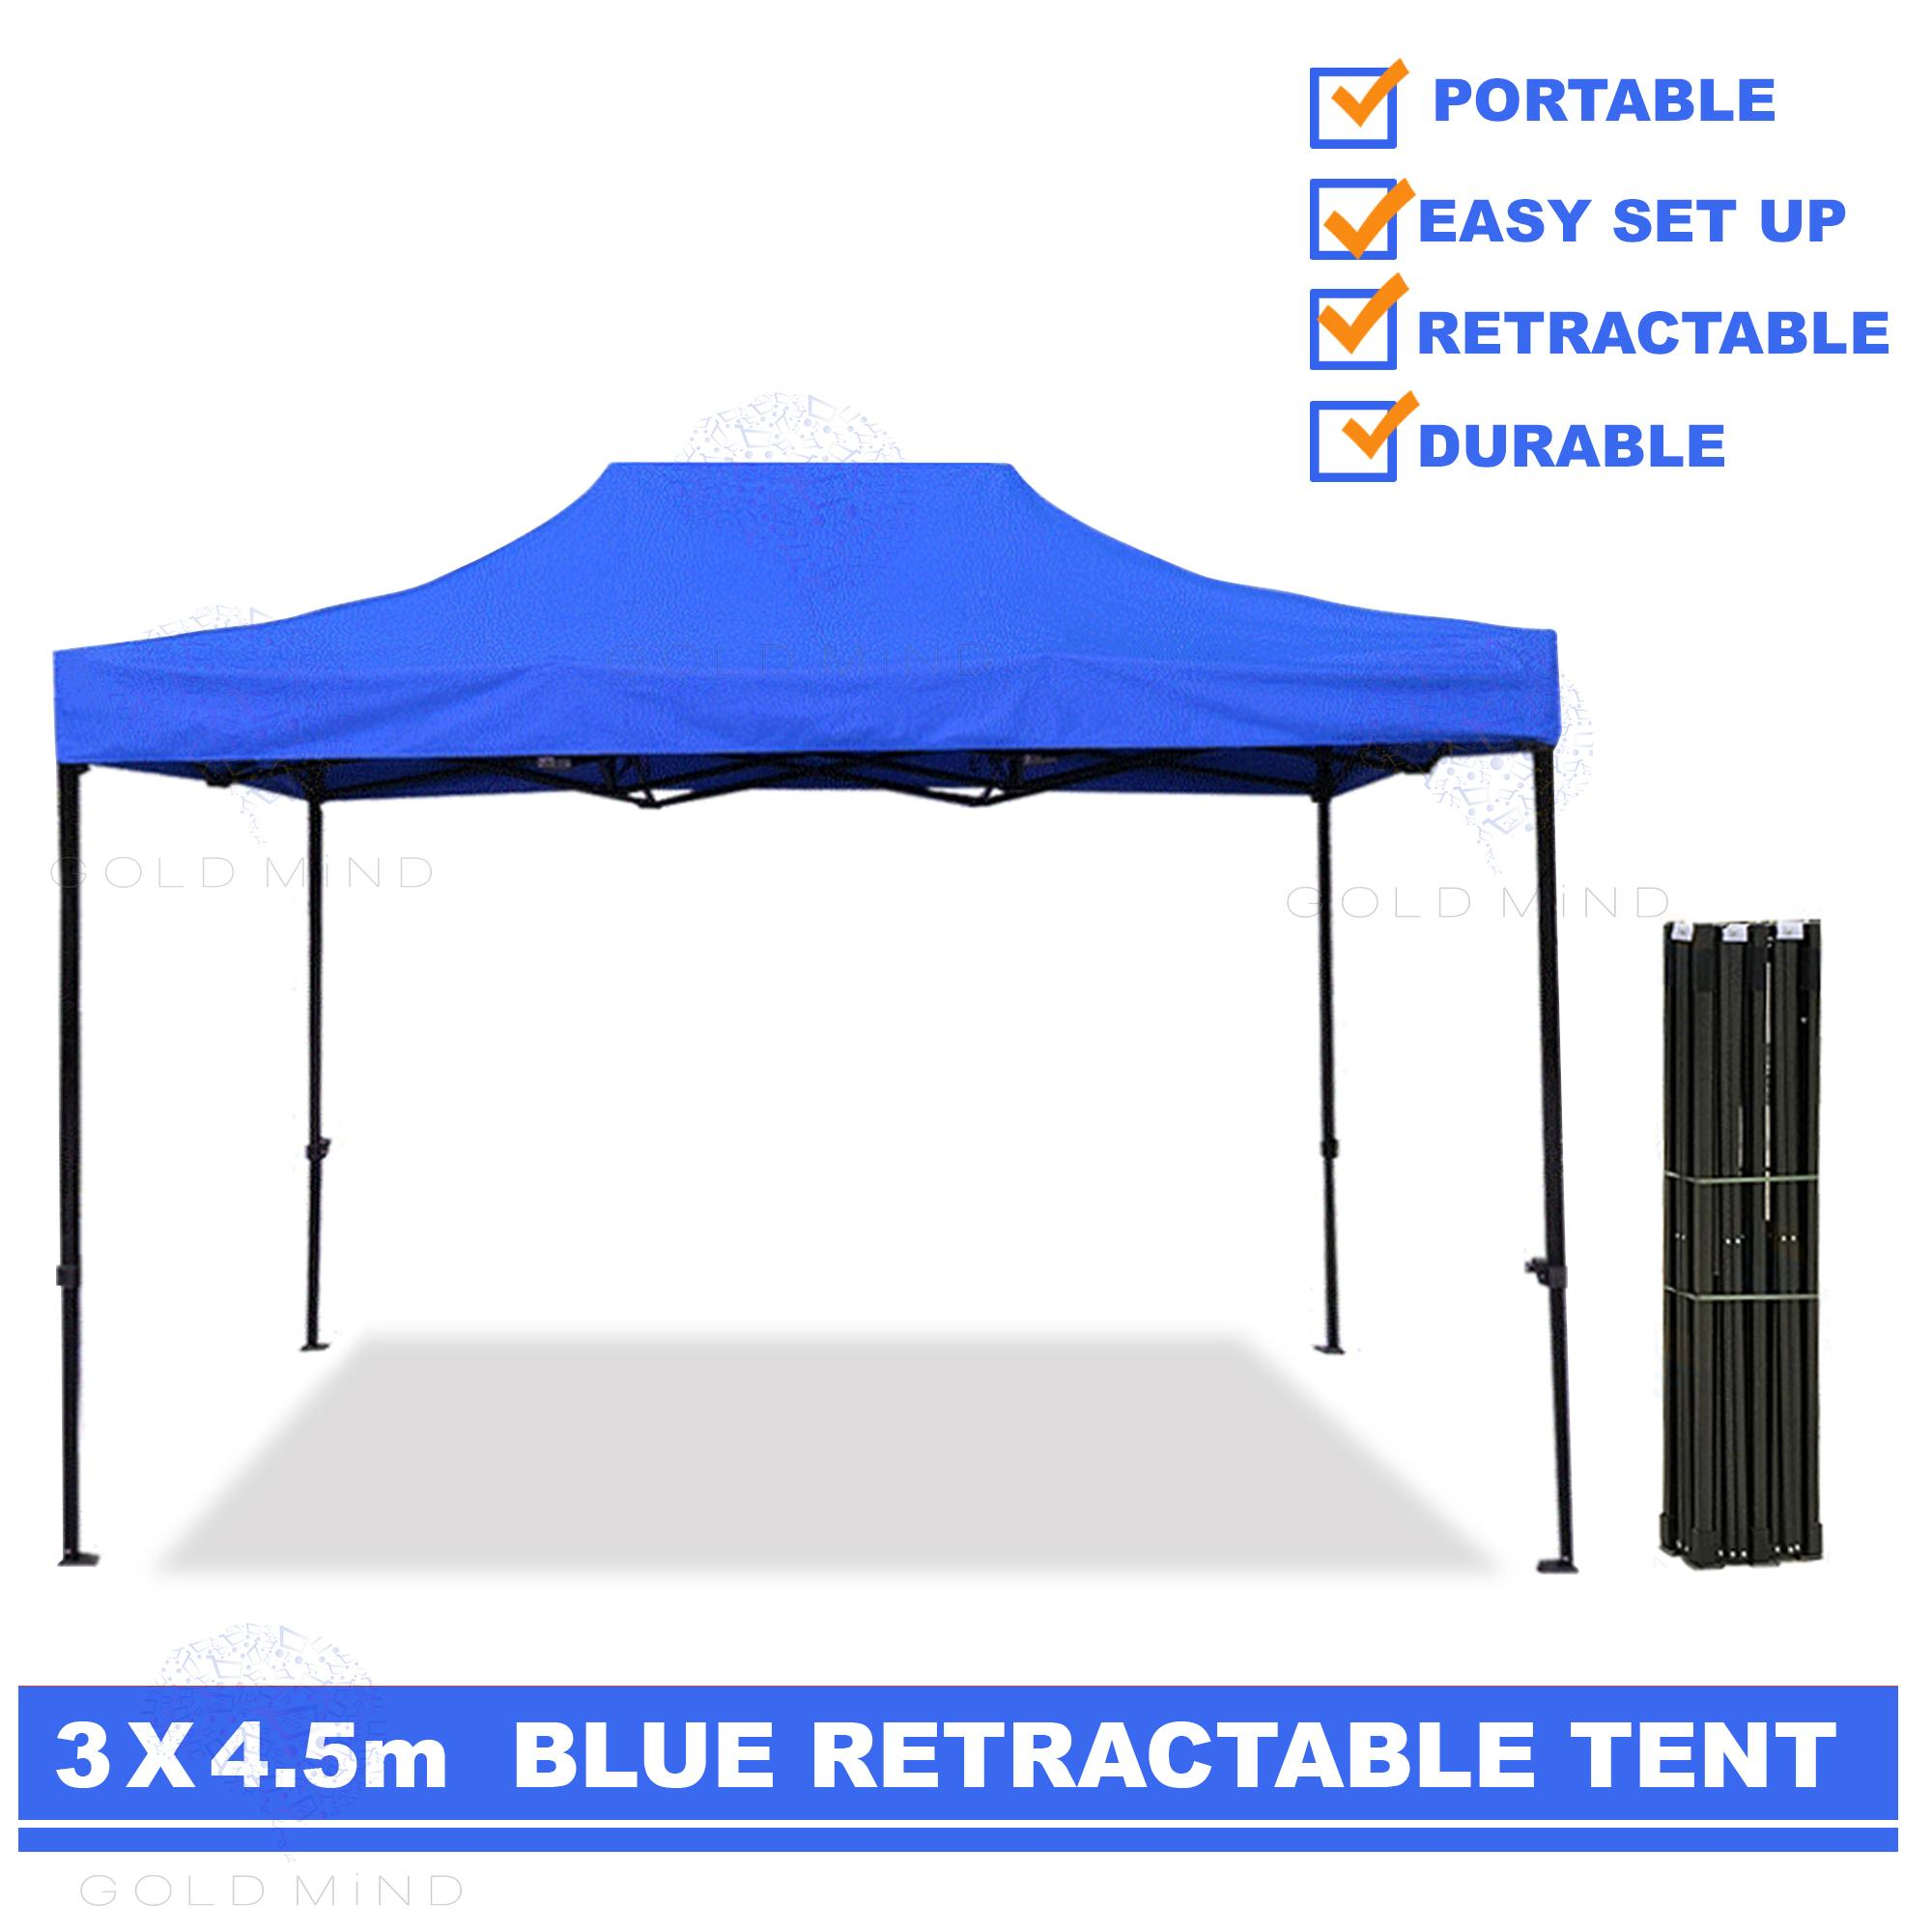 Canopies for sale - Camping Shelter Online Deals & Prices in ... on